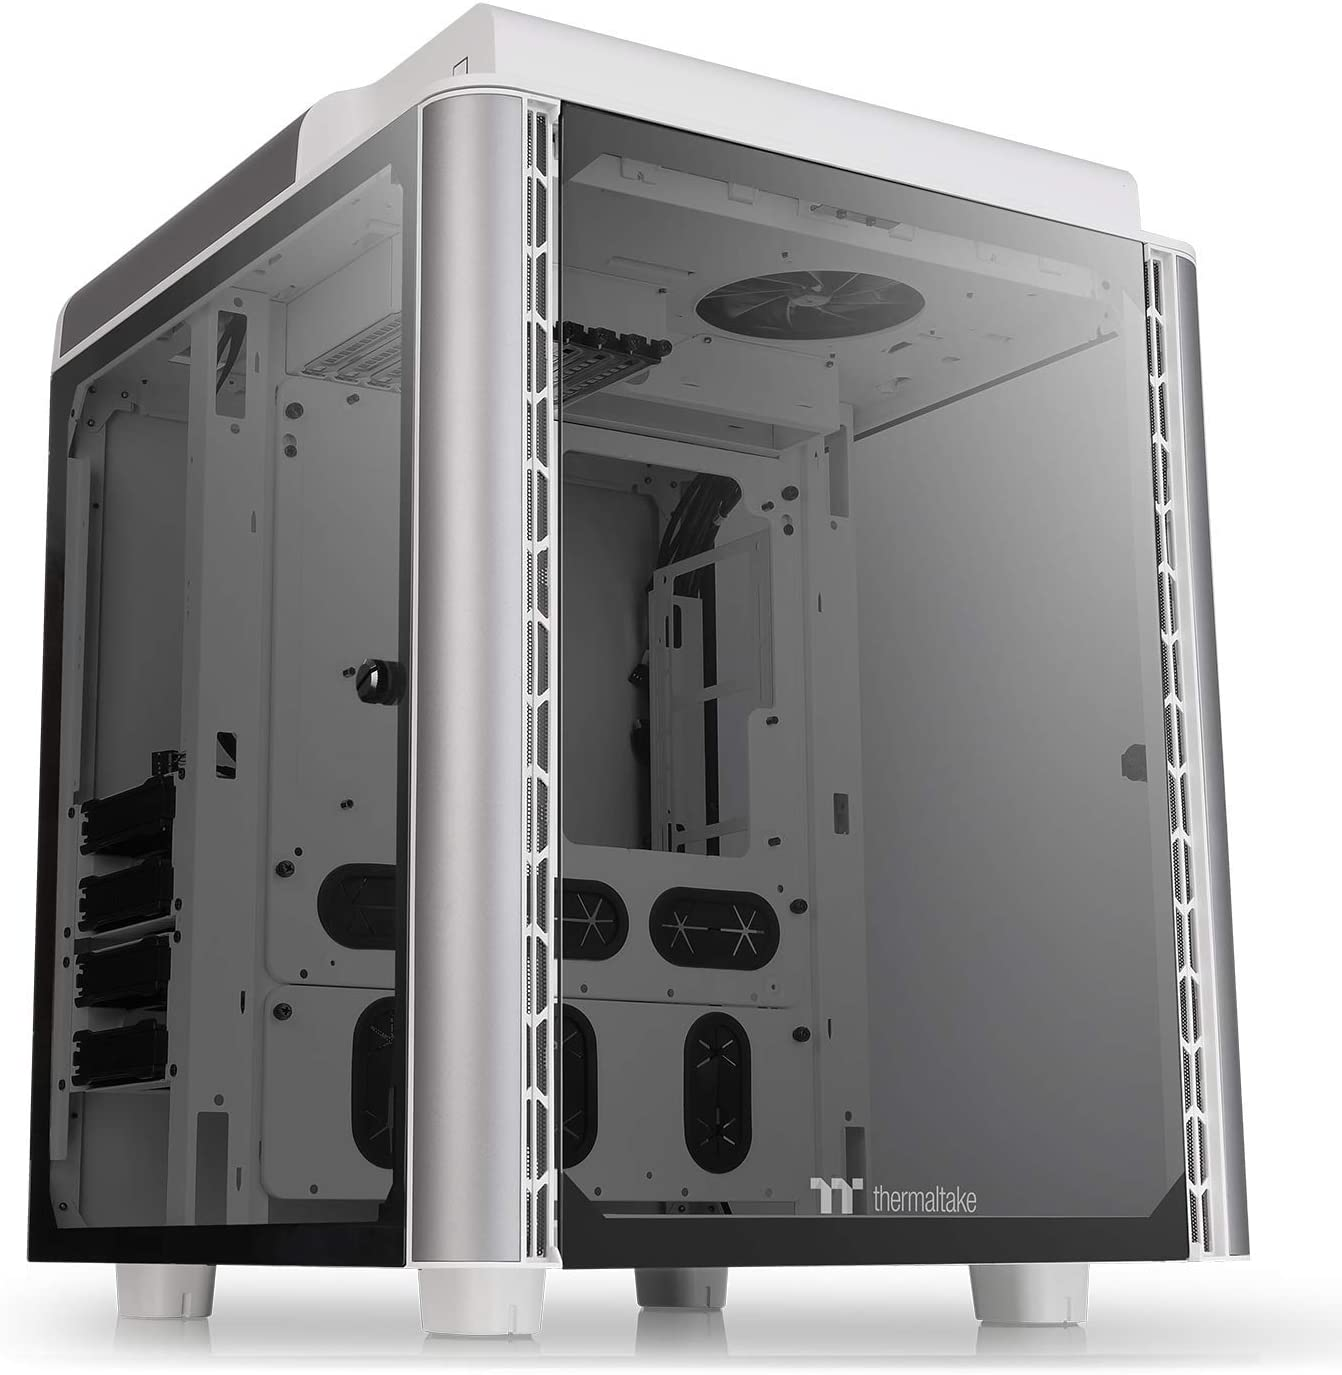 Thermaltake Level 20 HT Snow Edition 4 Tempered Glass Type-C Fully Modular E-ATX Full Tower Computer Chassis with 2 140mm Top Fan Pre-Installed CA-1P6-00F6WN-00